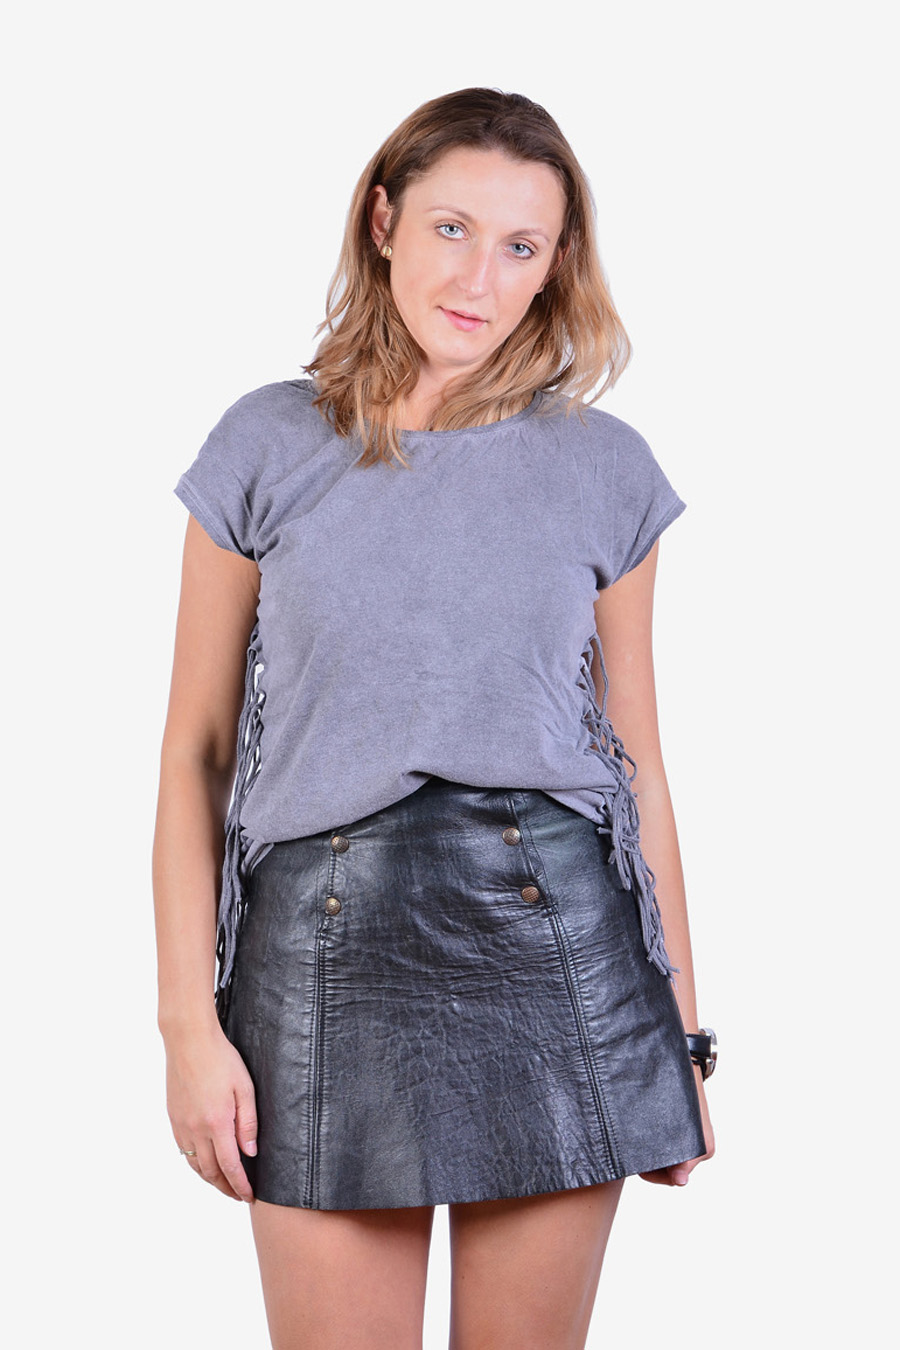 Vintage 1970's leather mini skirt